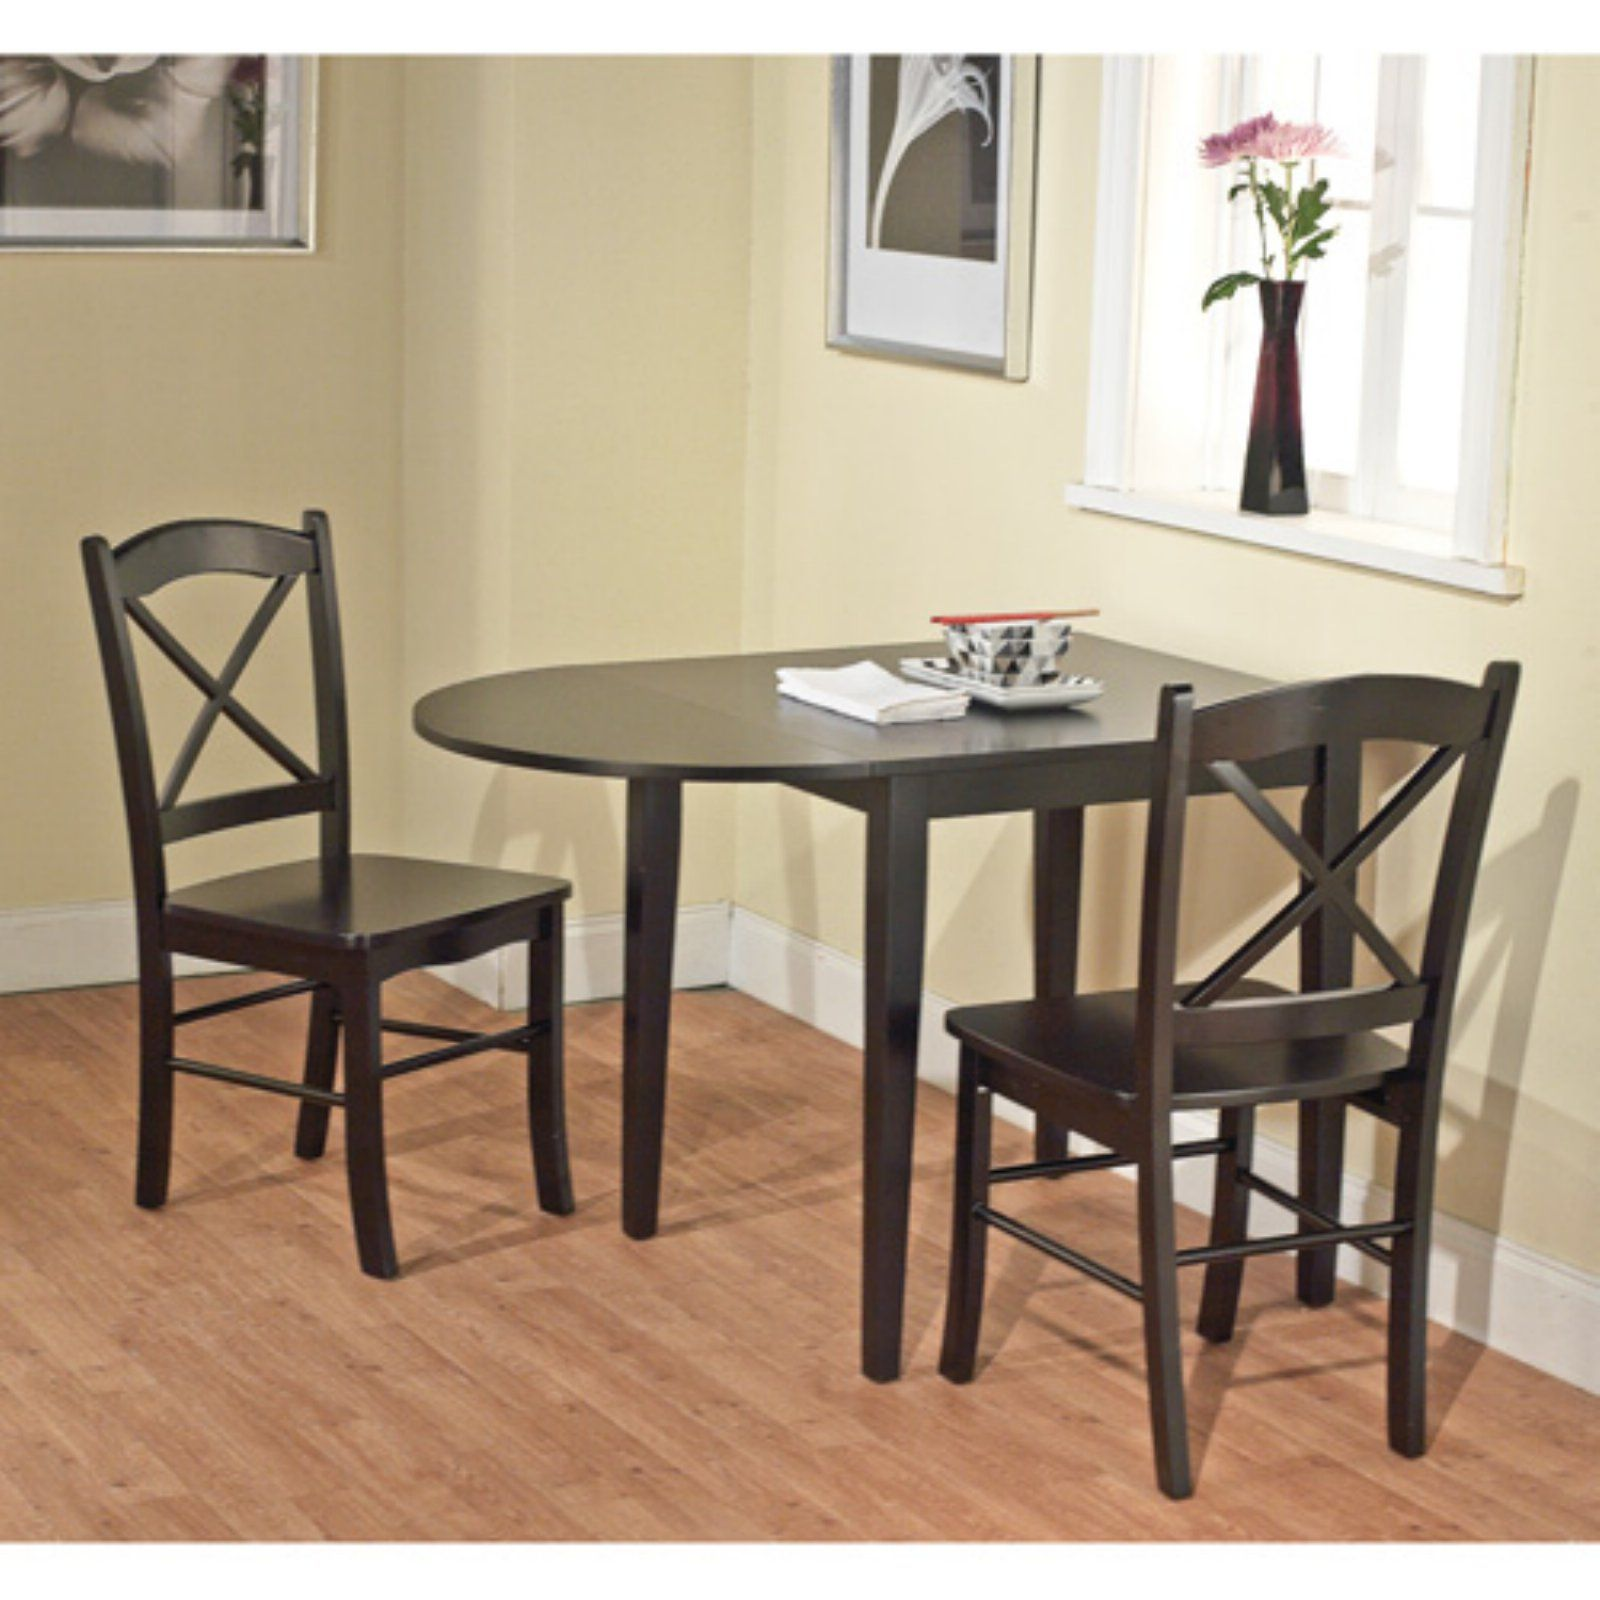 Tiffany 3 Piece Dining Table Set Dining Room Sets Dining